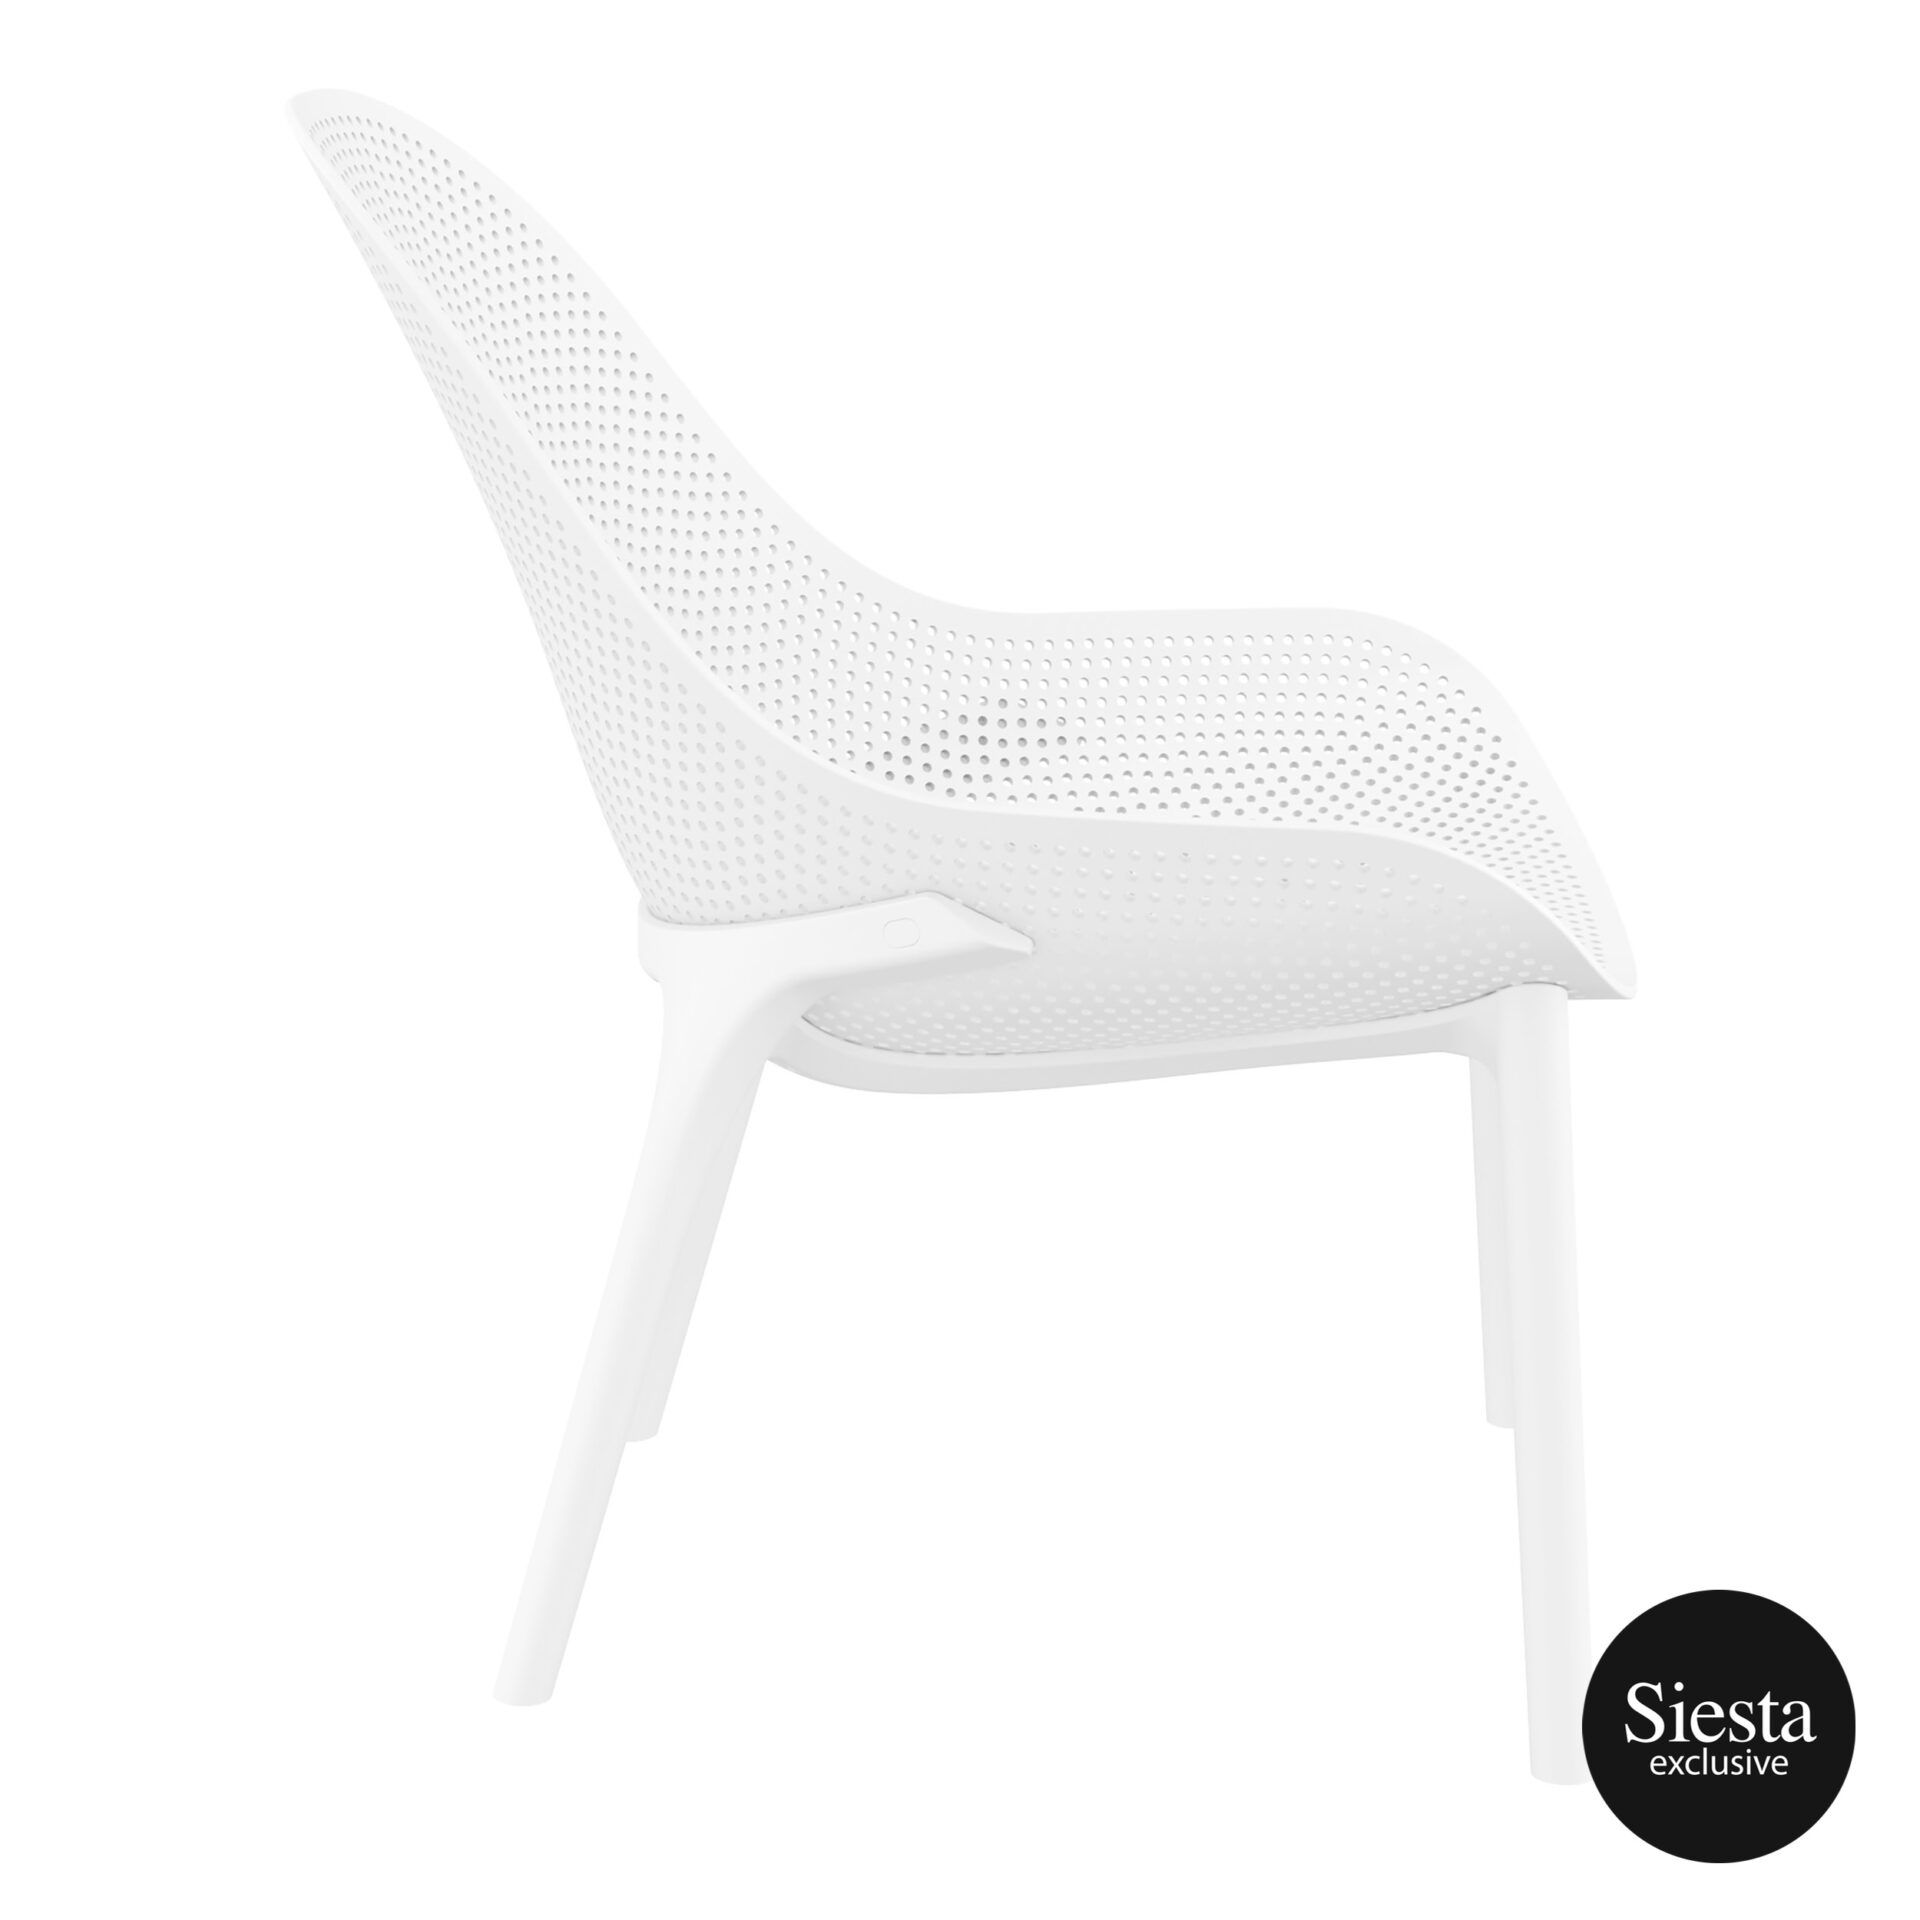 outdoor seating polypropylene sky lounge white side 1